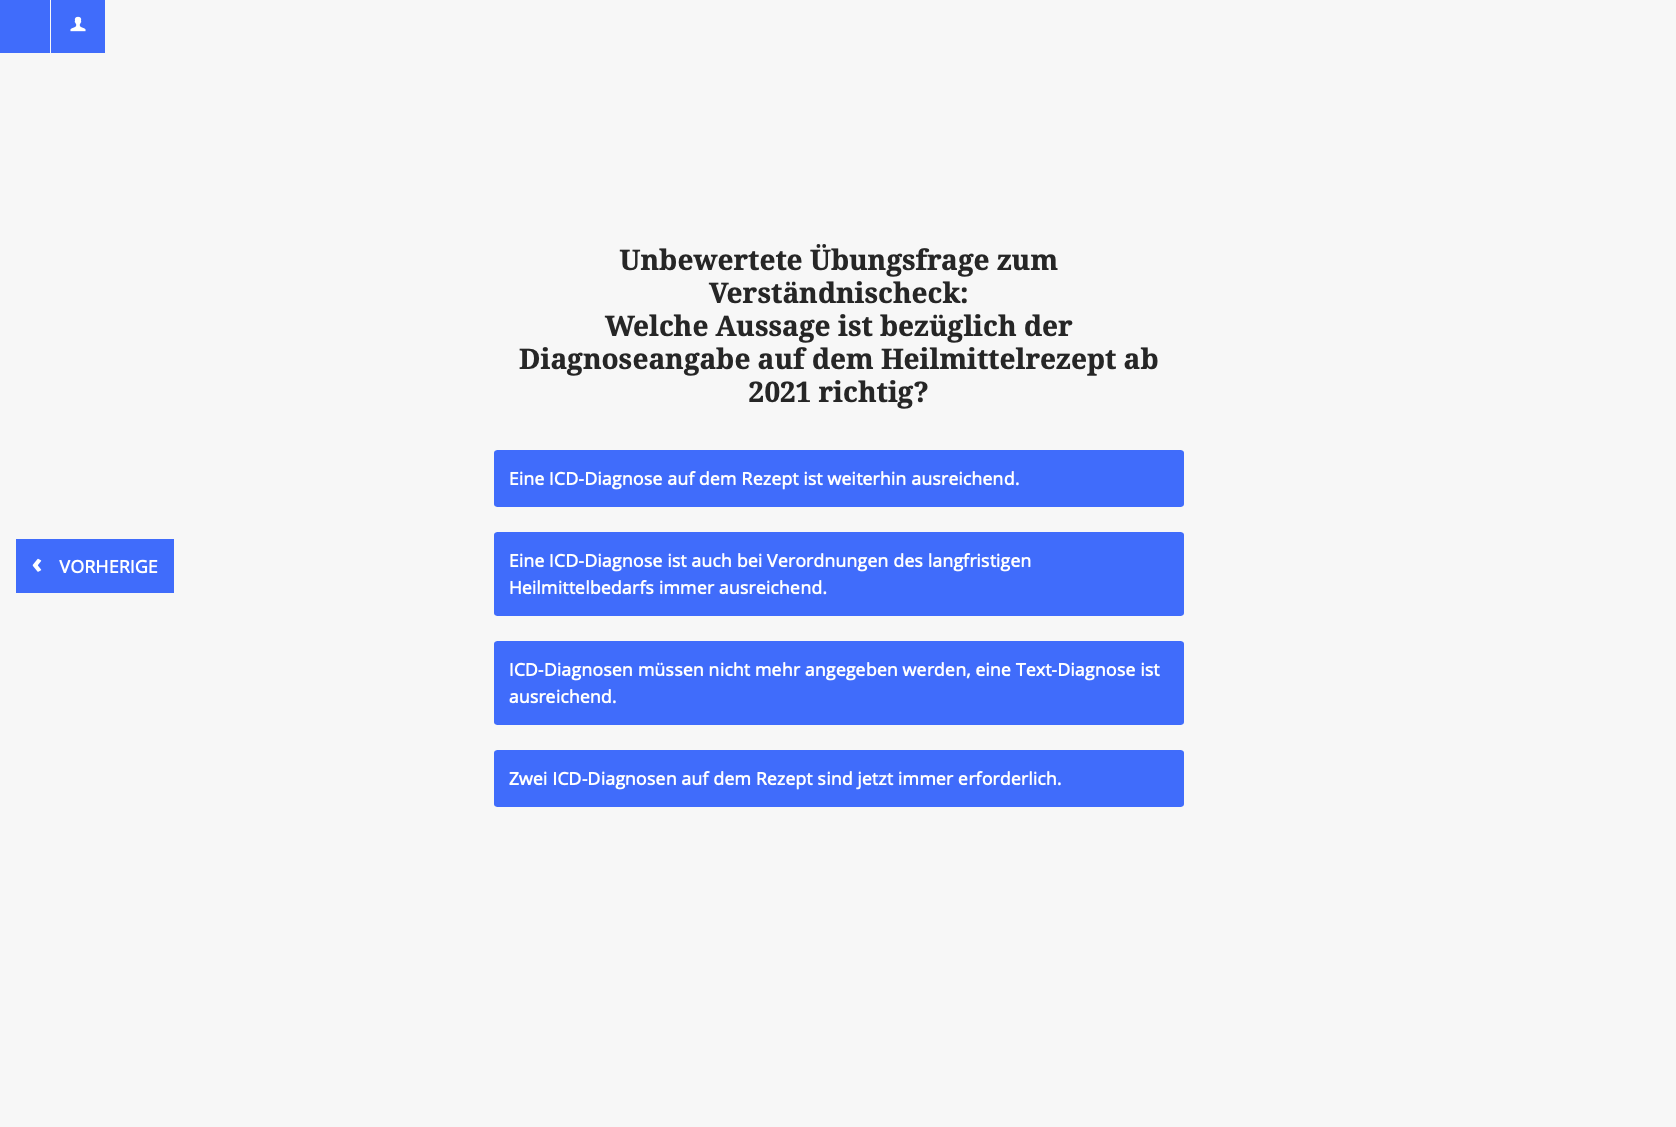 https://facharztzentrum-wertheim.de/wp-content/uploads/2020/12/Bildschirmfoto-2020-12-02-um-18.34.24.png